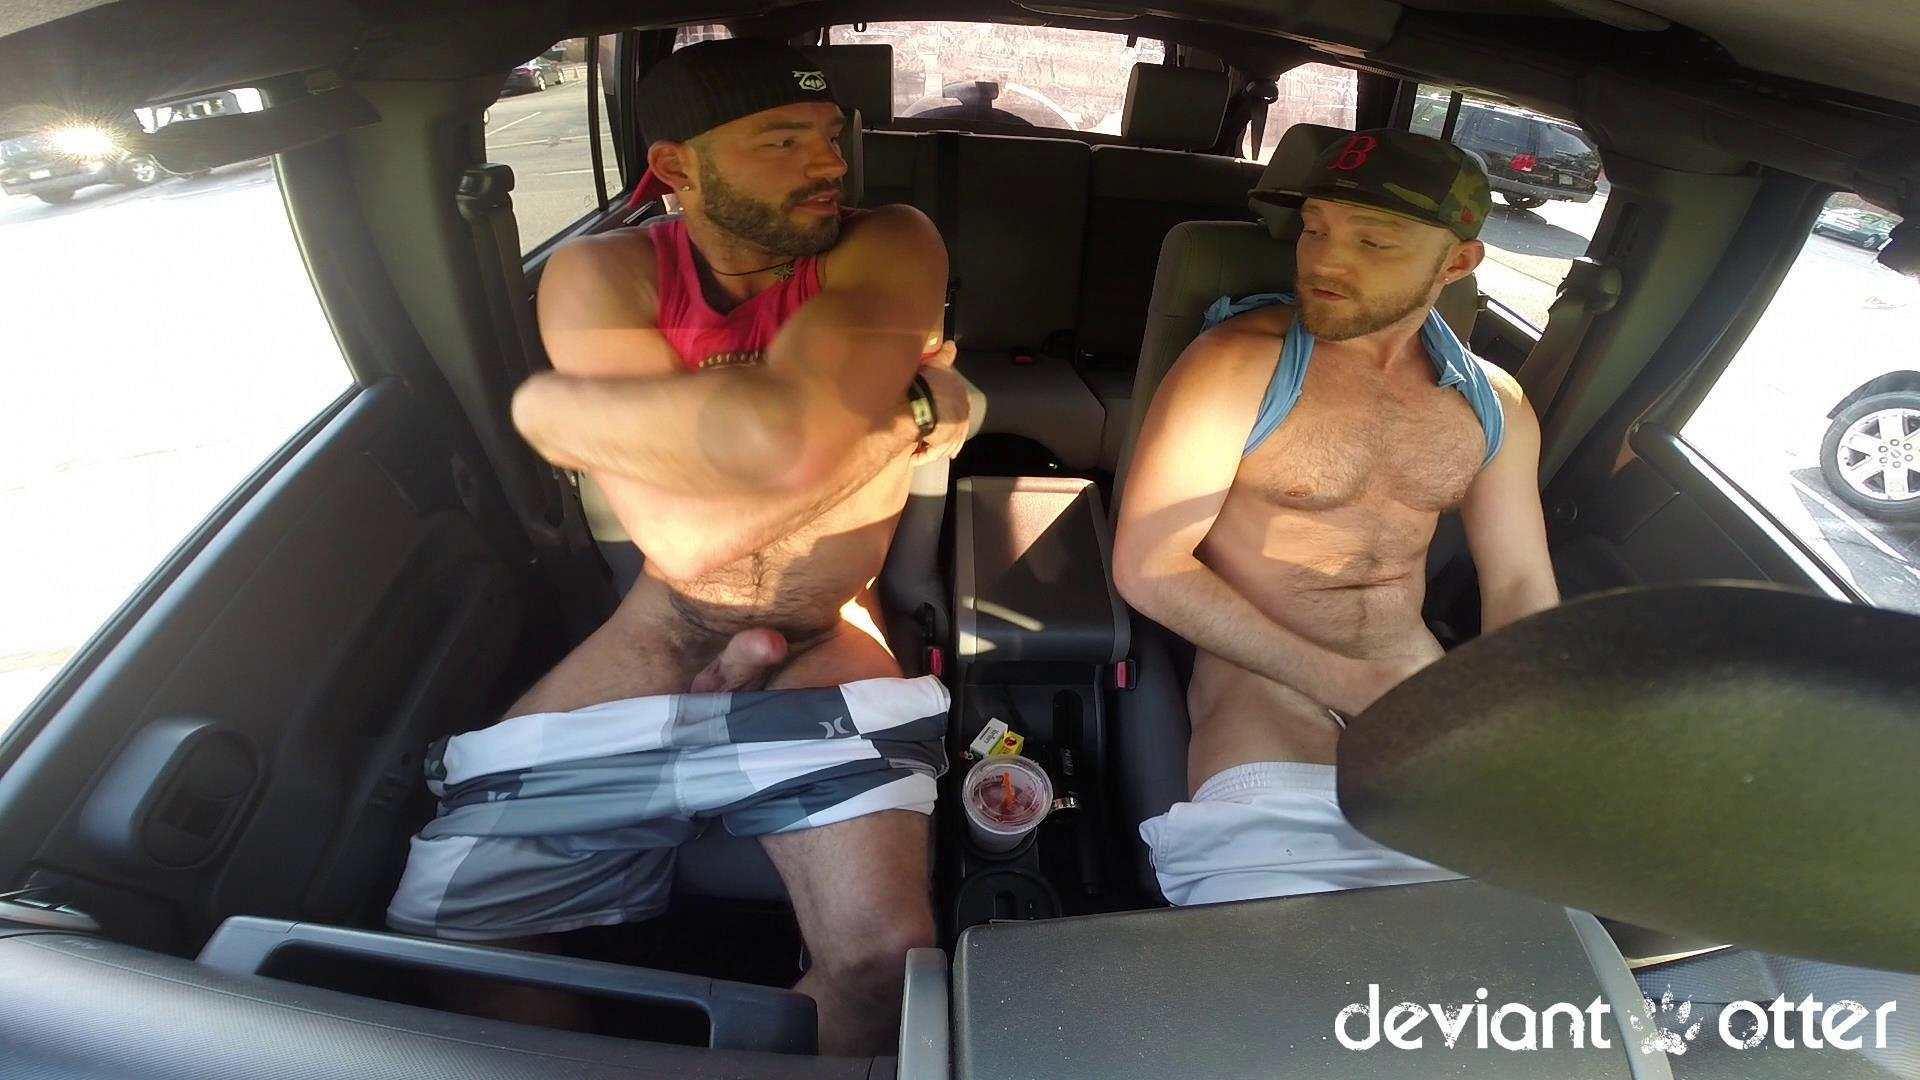 Deviant-Otter-Xavier-Sucking-Cock-In-Public-Hairy-Guys-Amateur-Gay-Porn-09 Masculine Hairy Guys Sucking Each Other's Cock In A Parking Lot